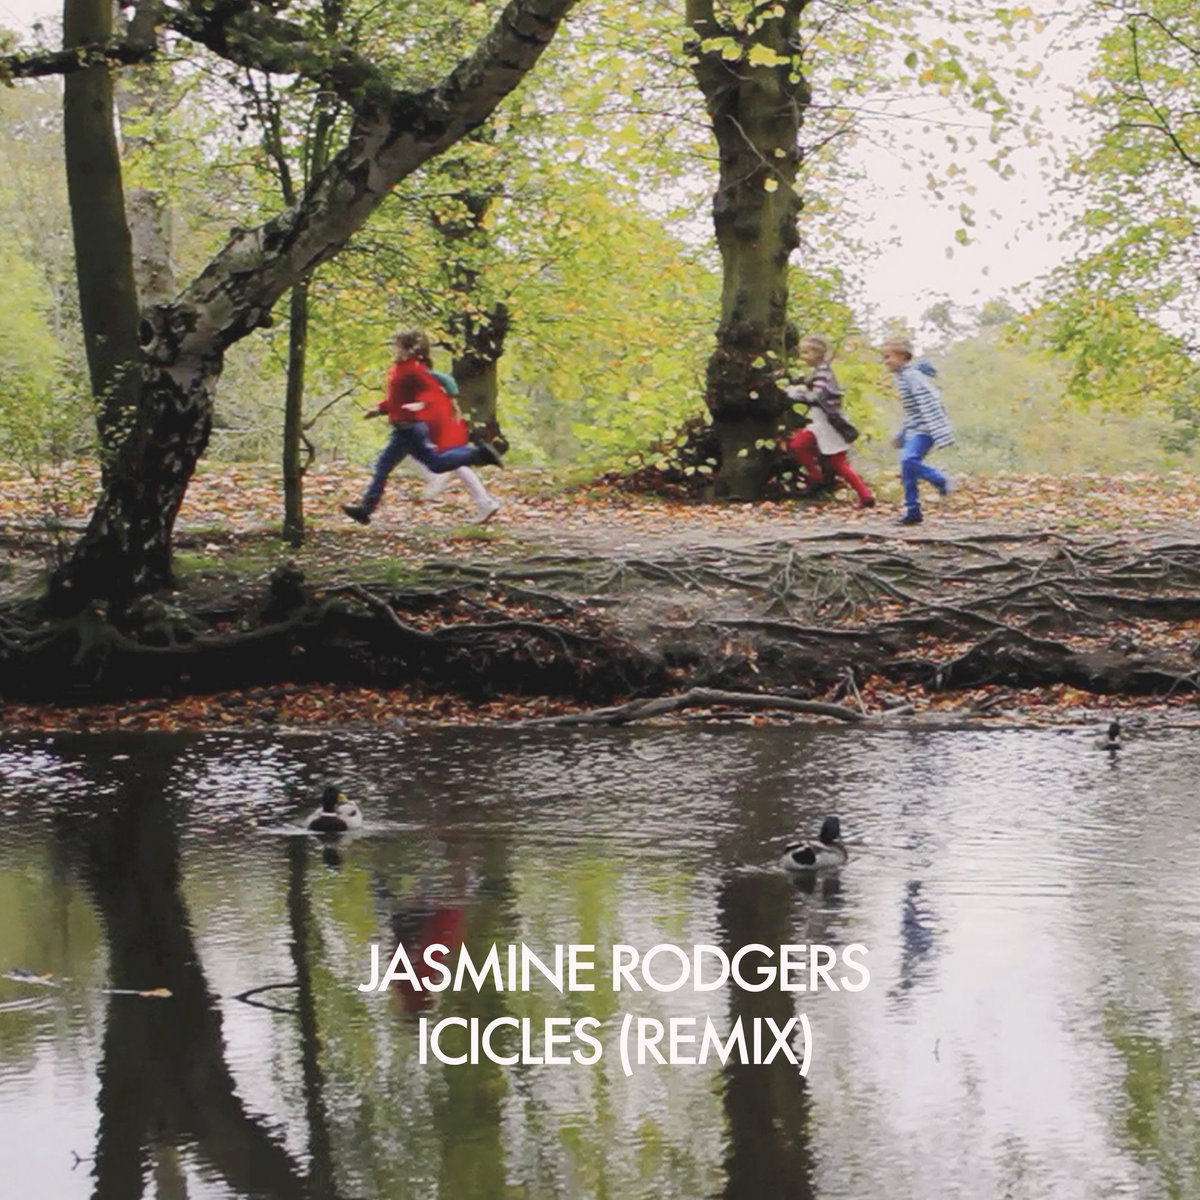 Icicles remix by Jasmine Rodgers